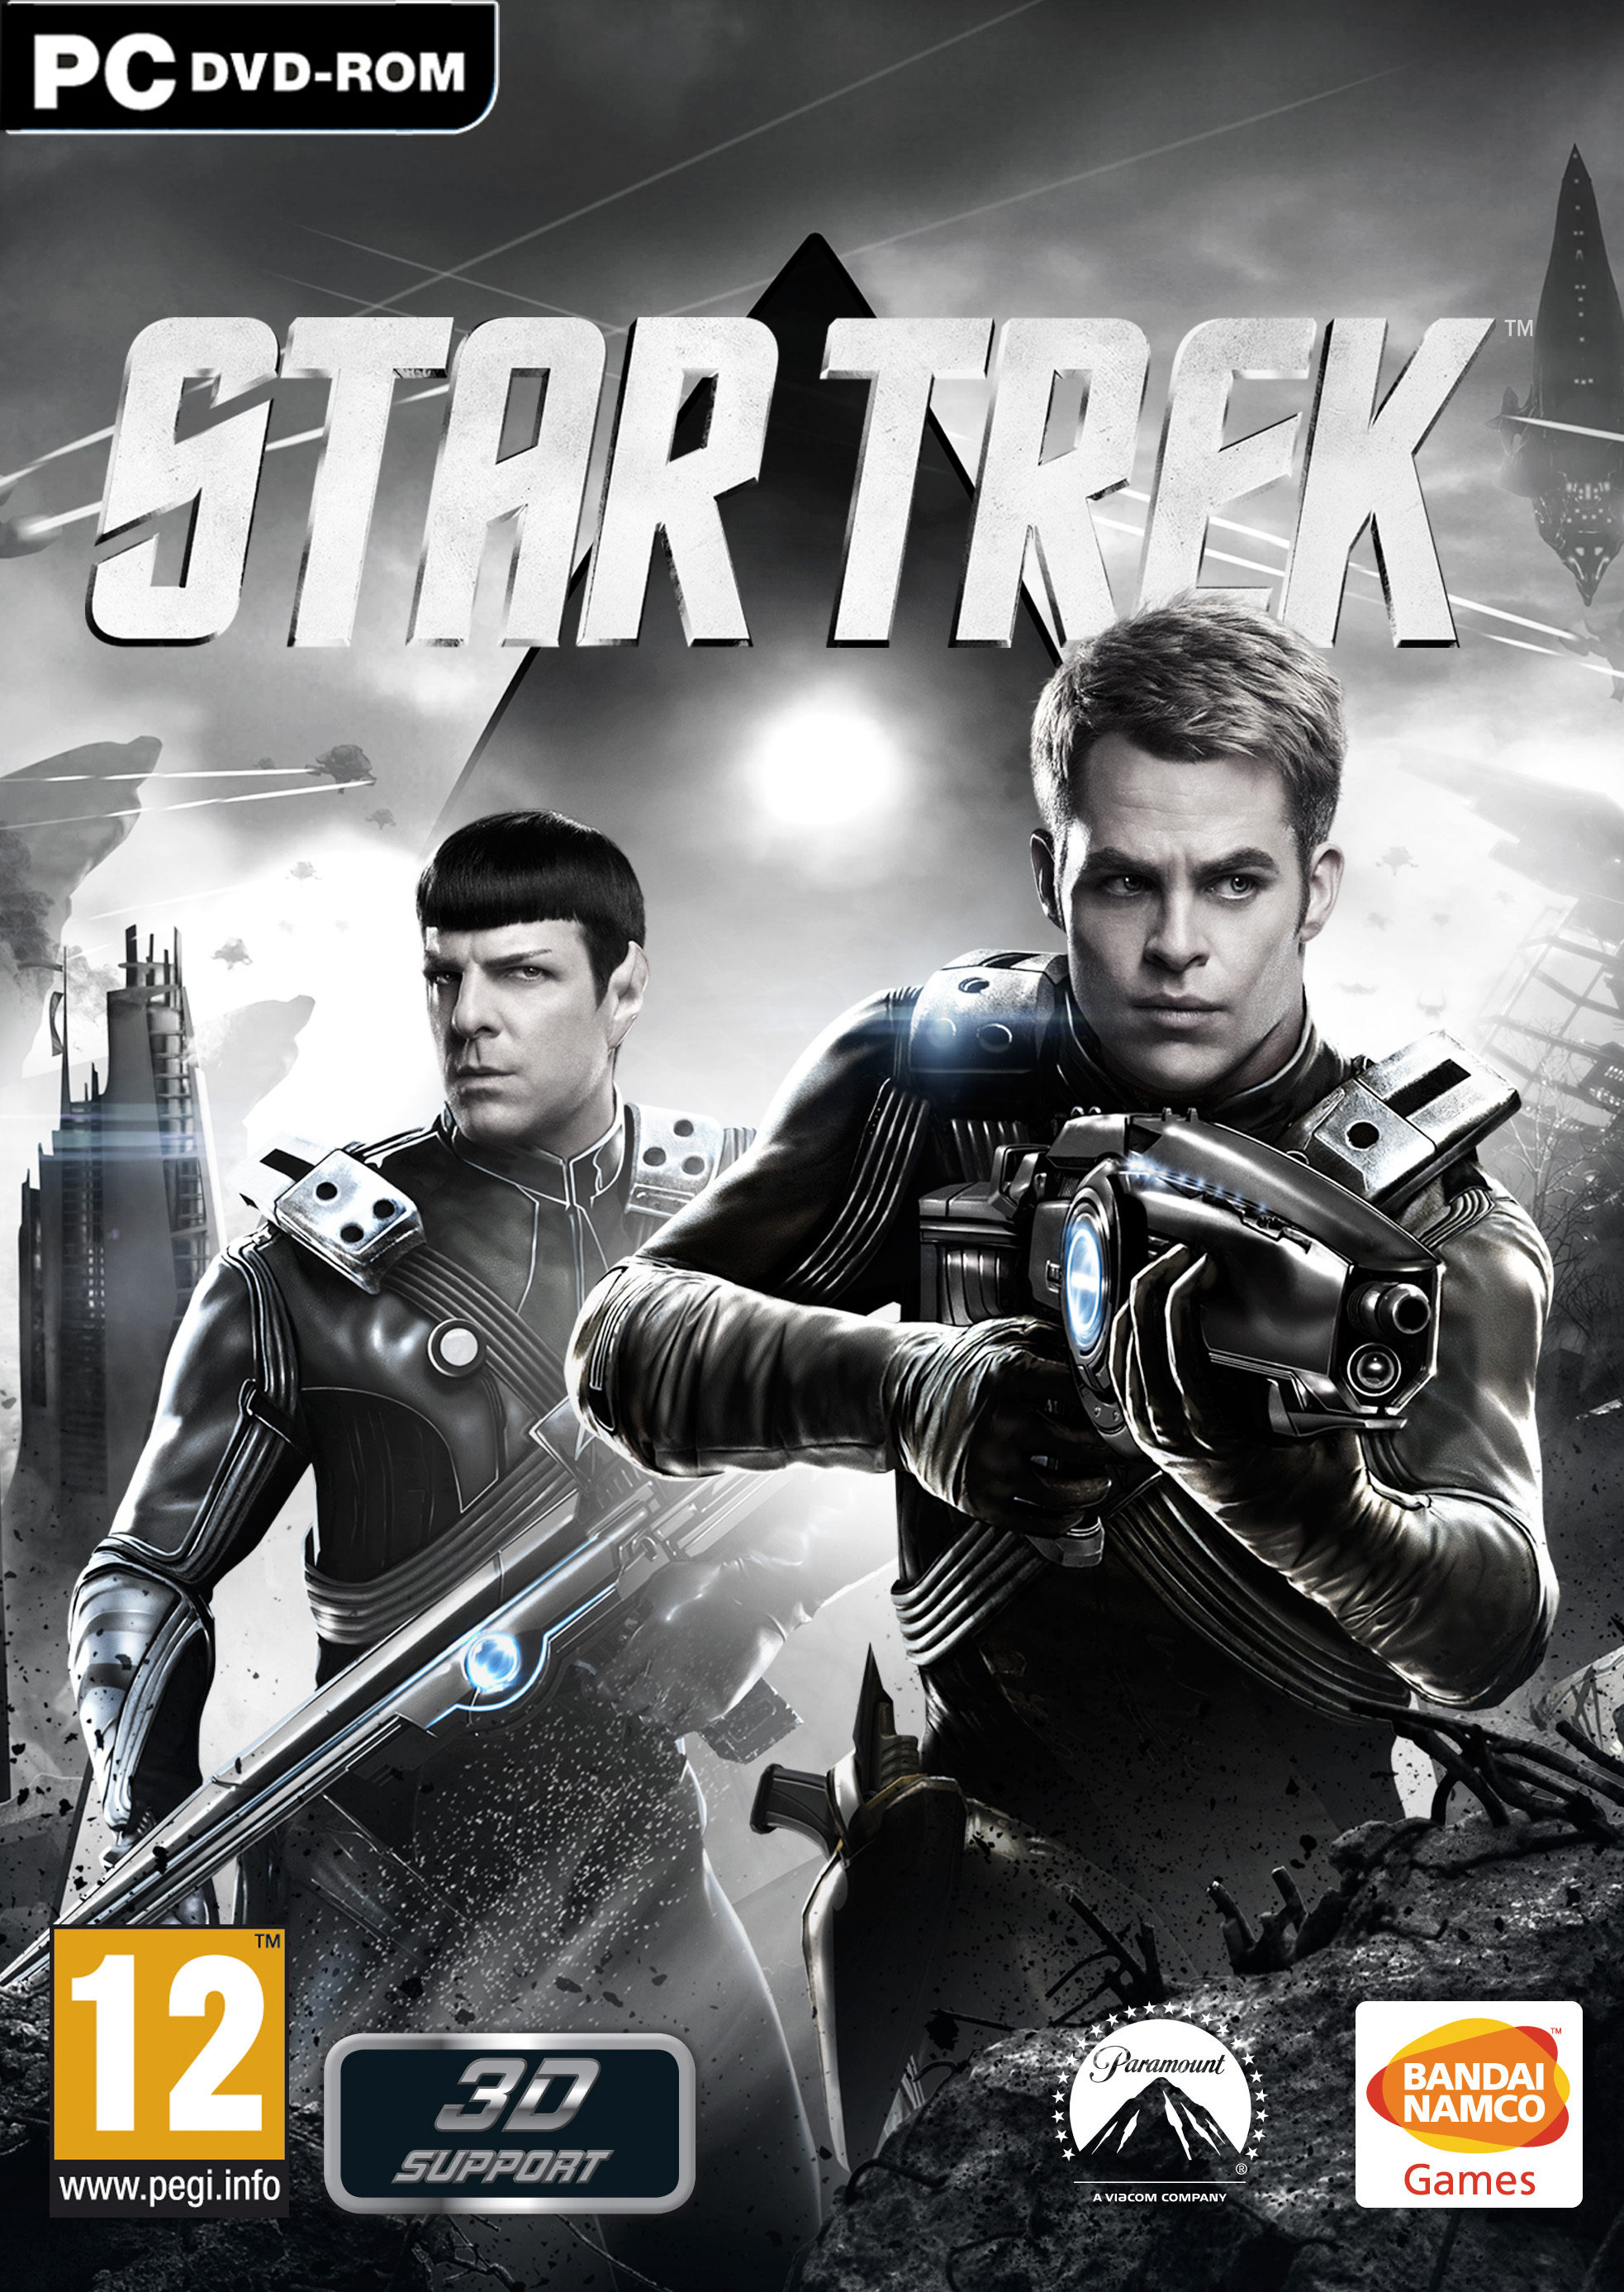 Star Trek Video Game Cover - Chris Pine and Zachary Quinto